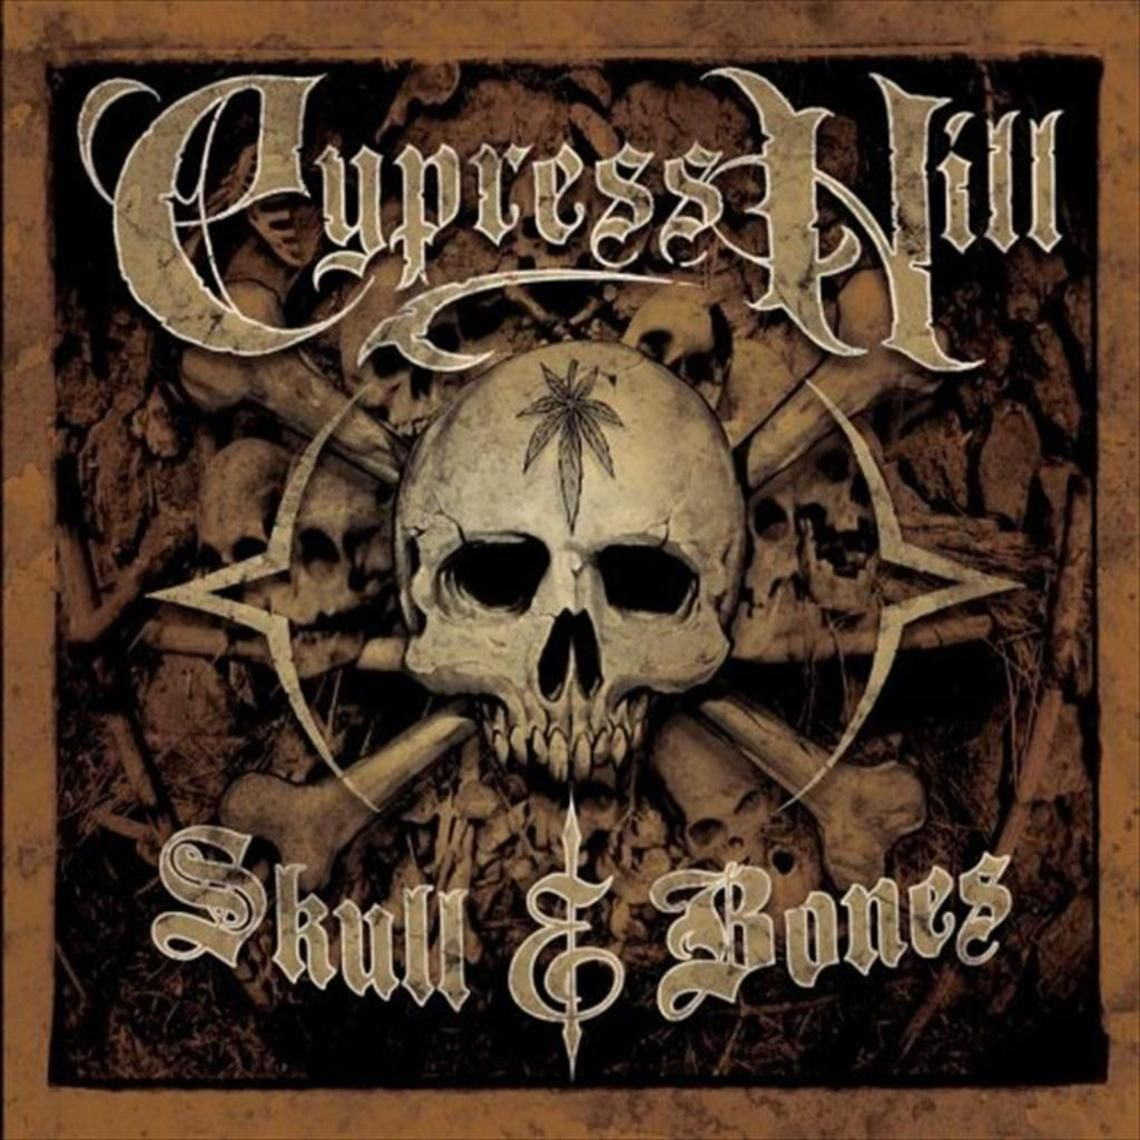 Skull Bones Is The Fifth Studio Album By Rap Group Cypress Hill Released On April Divided Into Two A Hip Hop Disc And